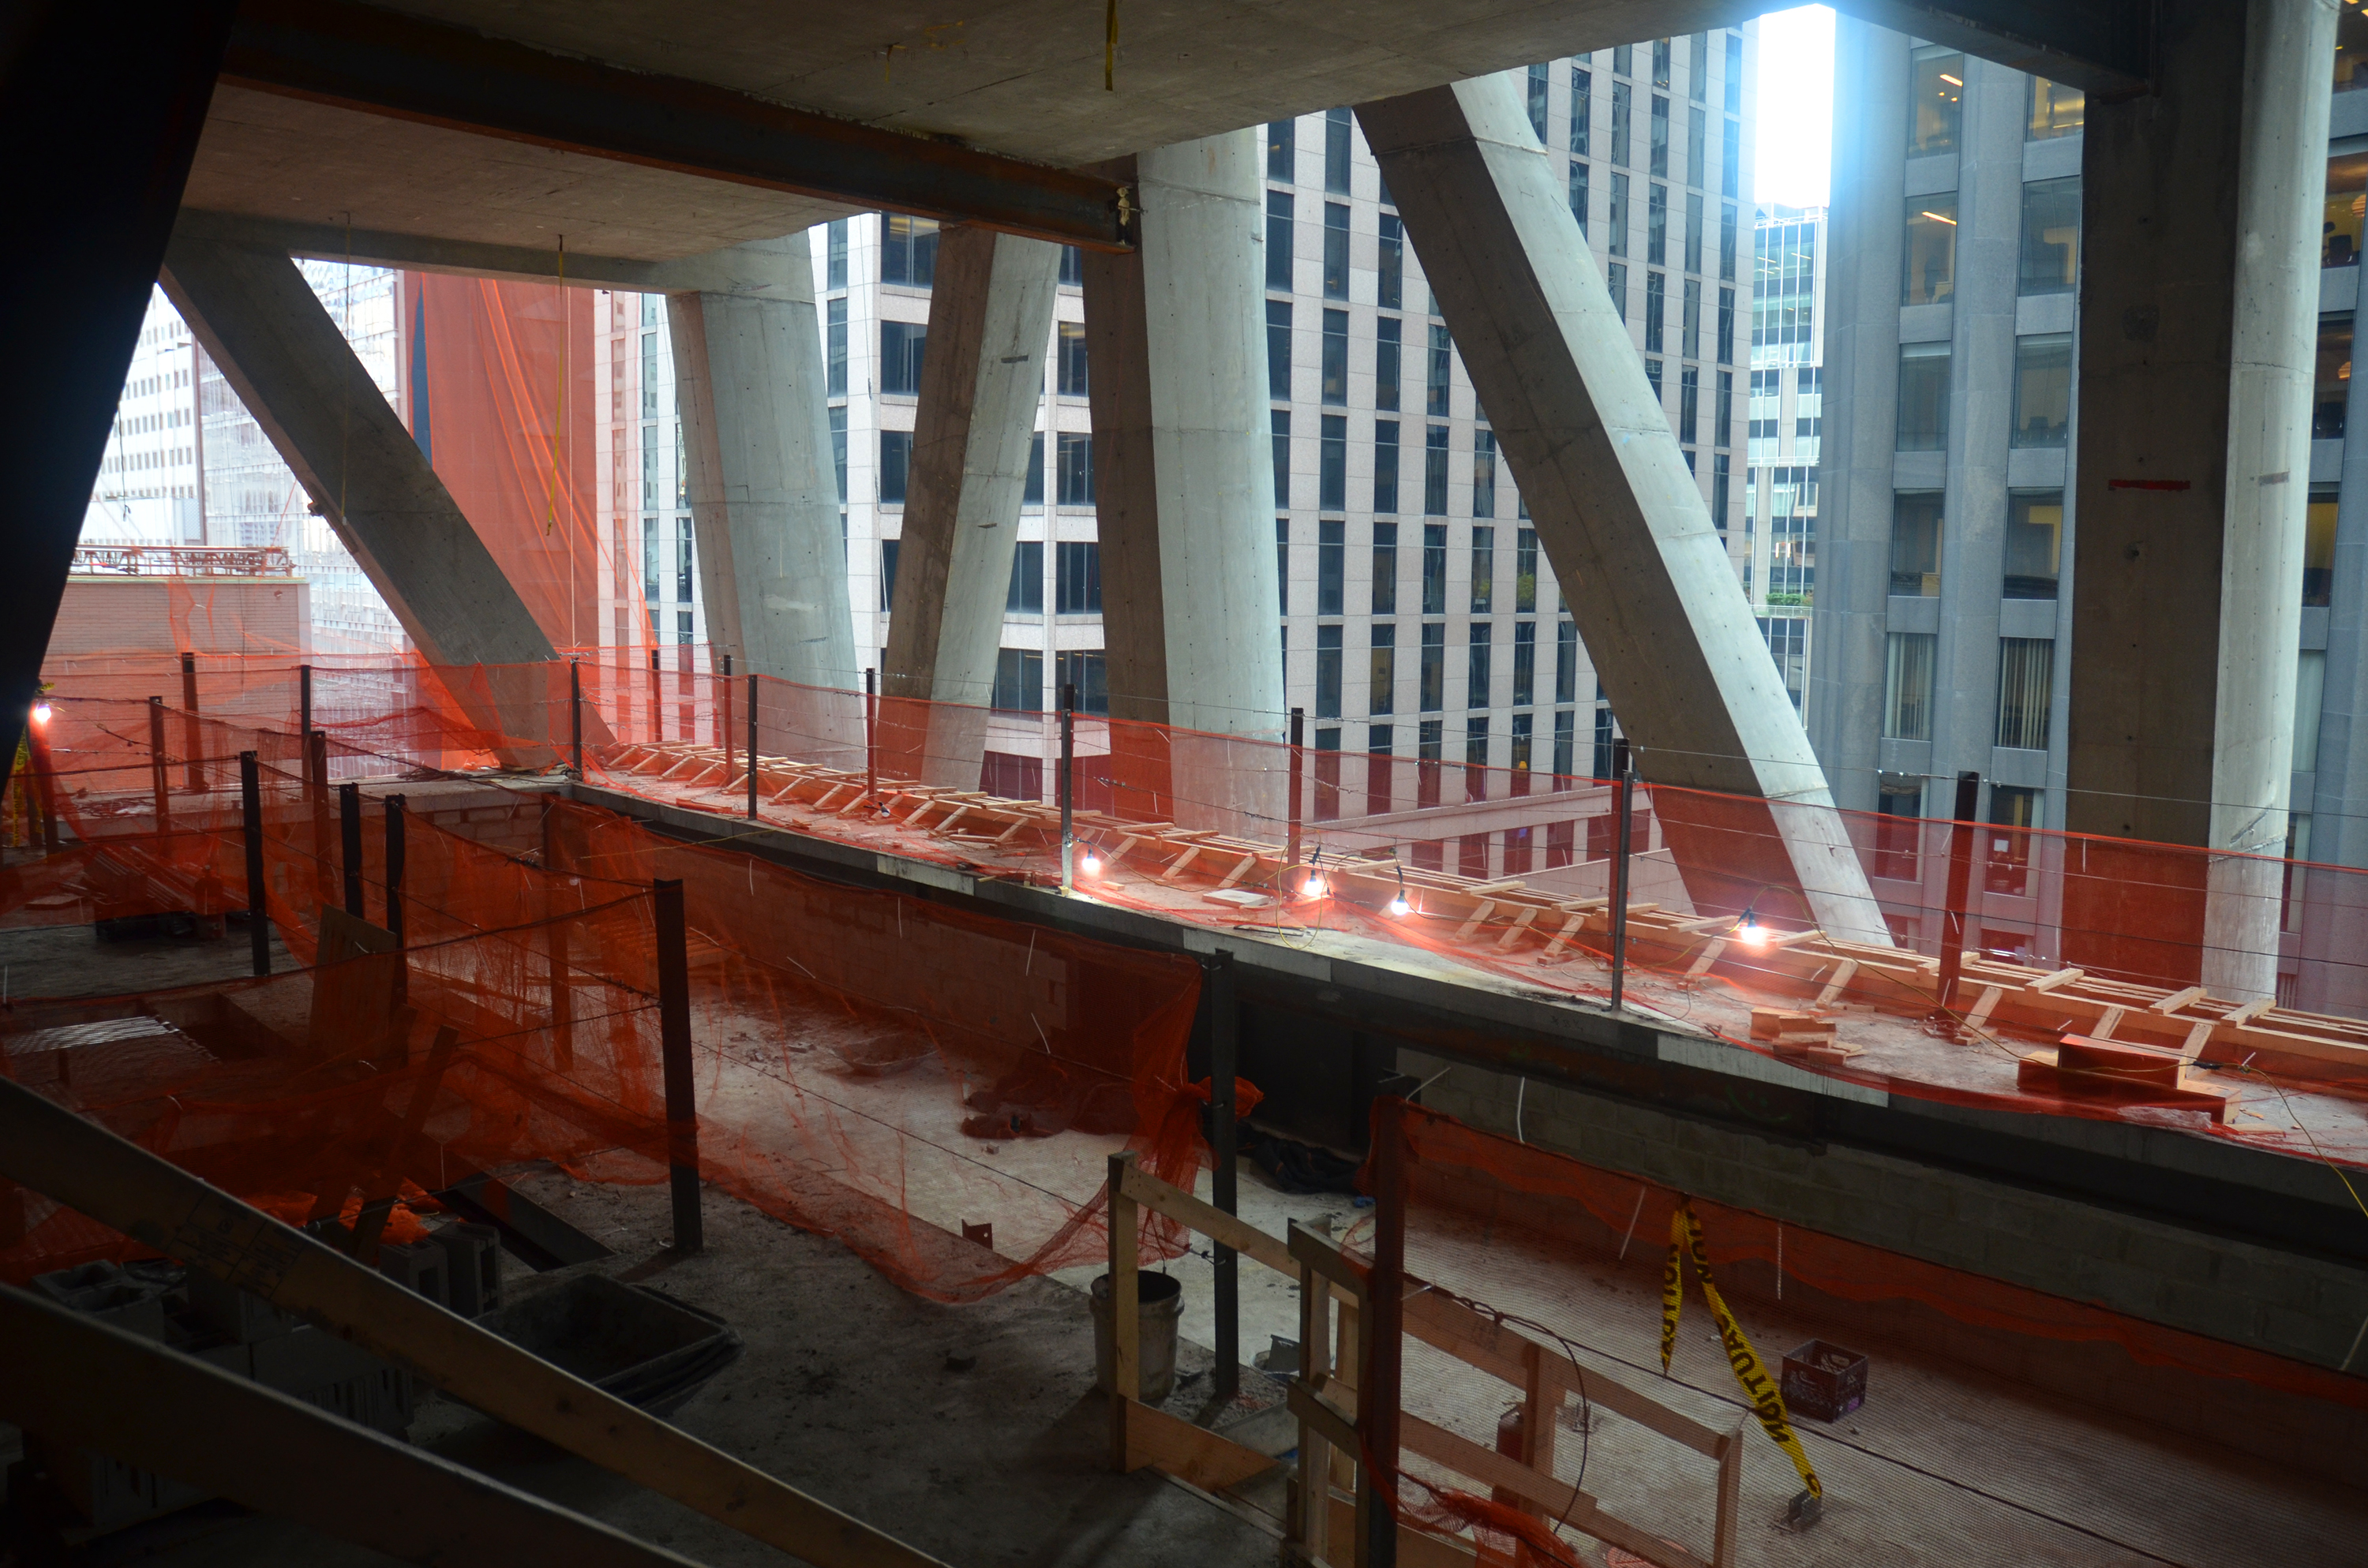 Swimming pool under construction at 53W53